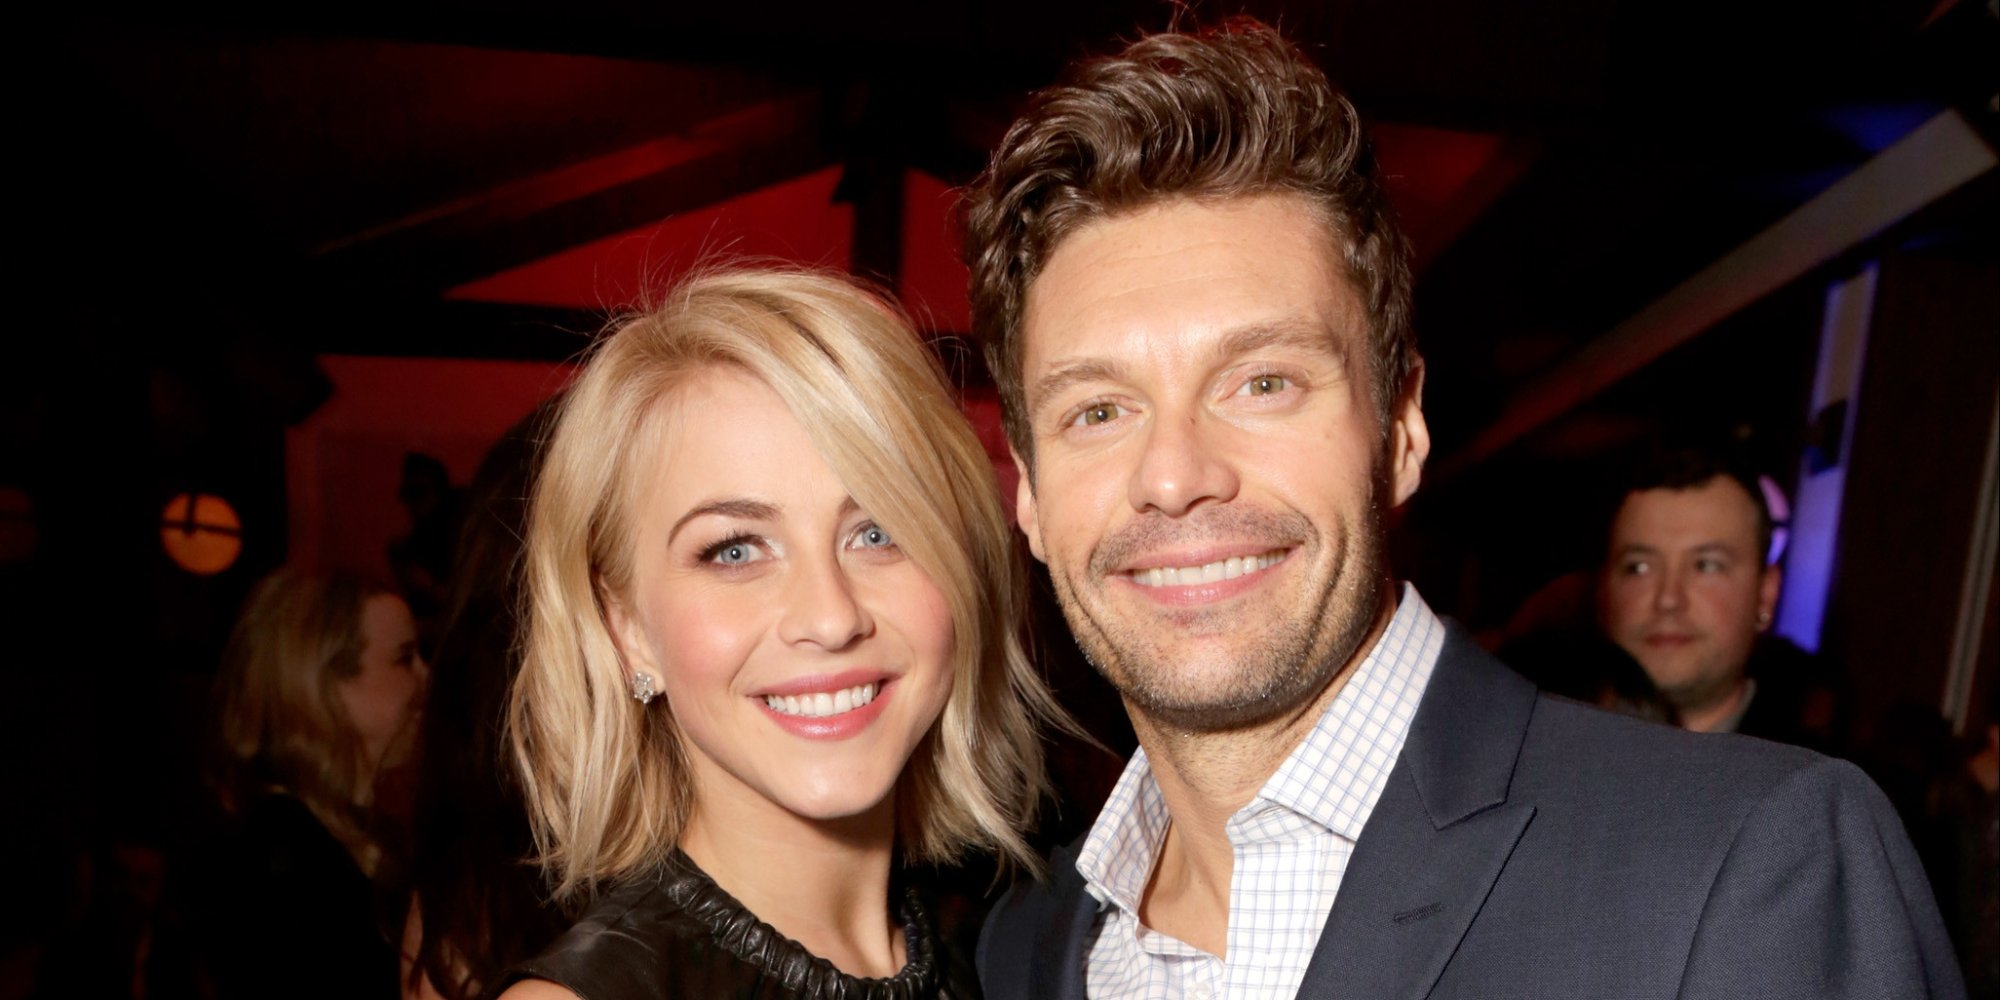 julianne hough and ryan seacrest relationship